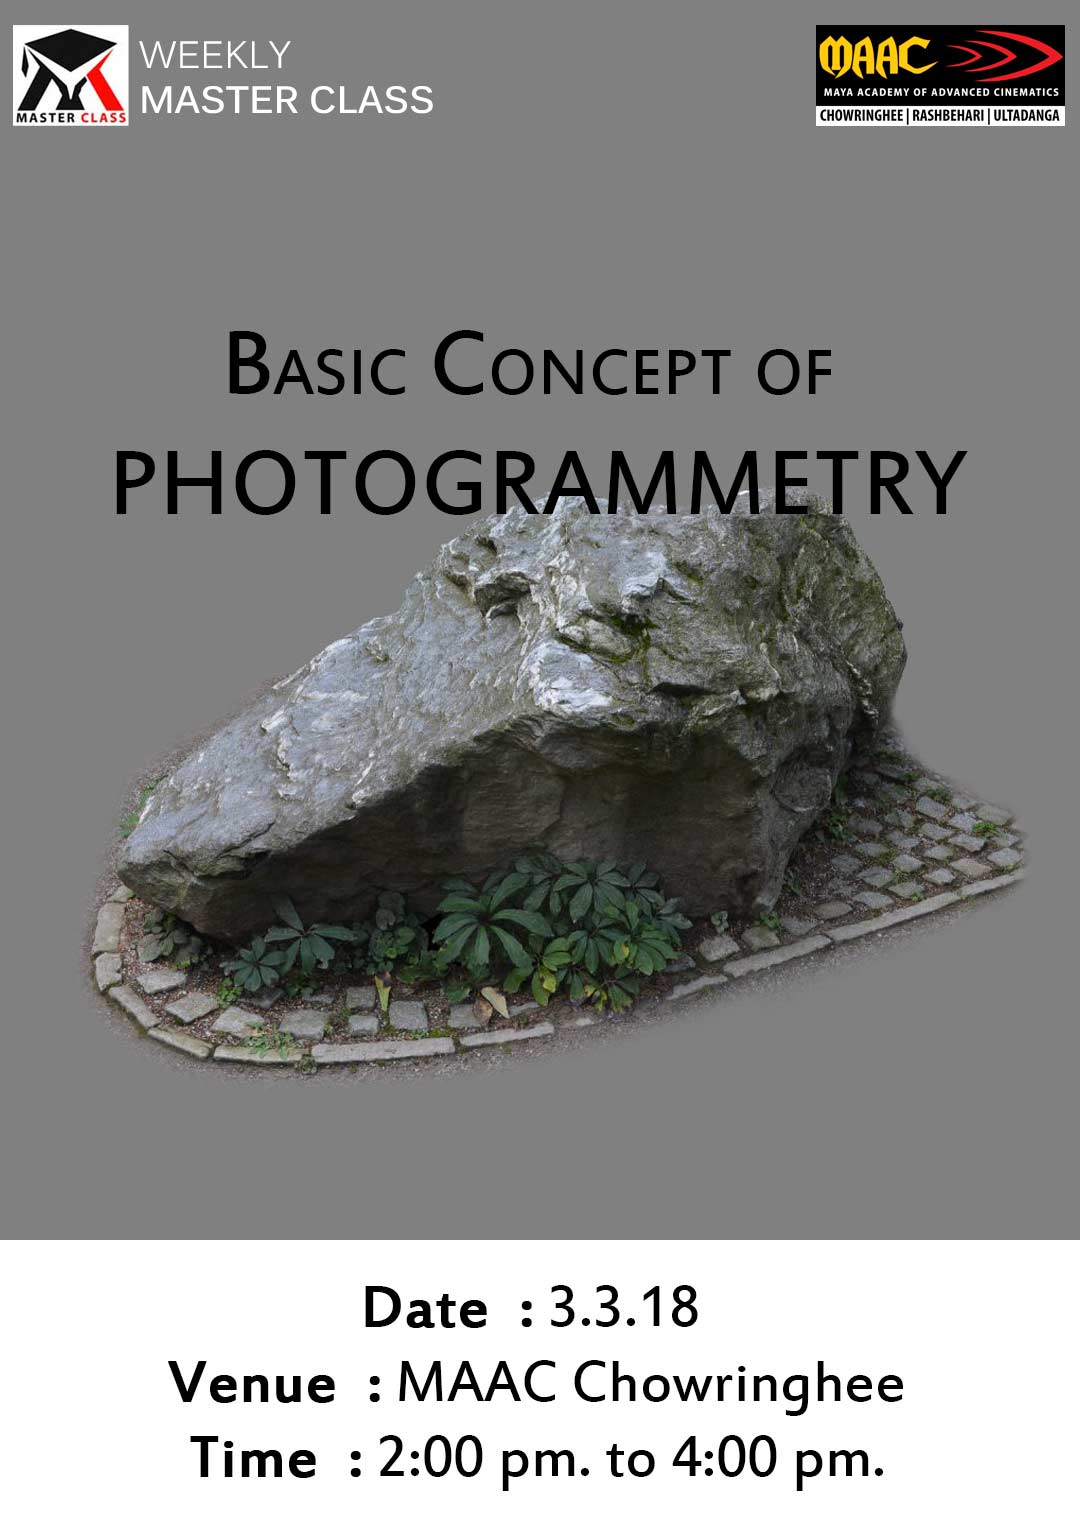 Weekly Master Class on Basic Concept Of Photogrammetry